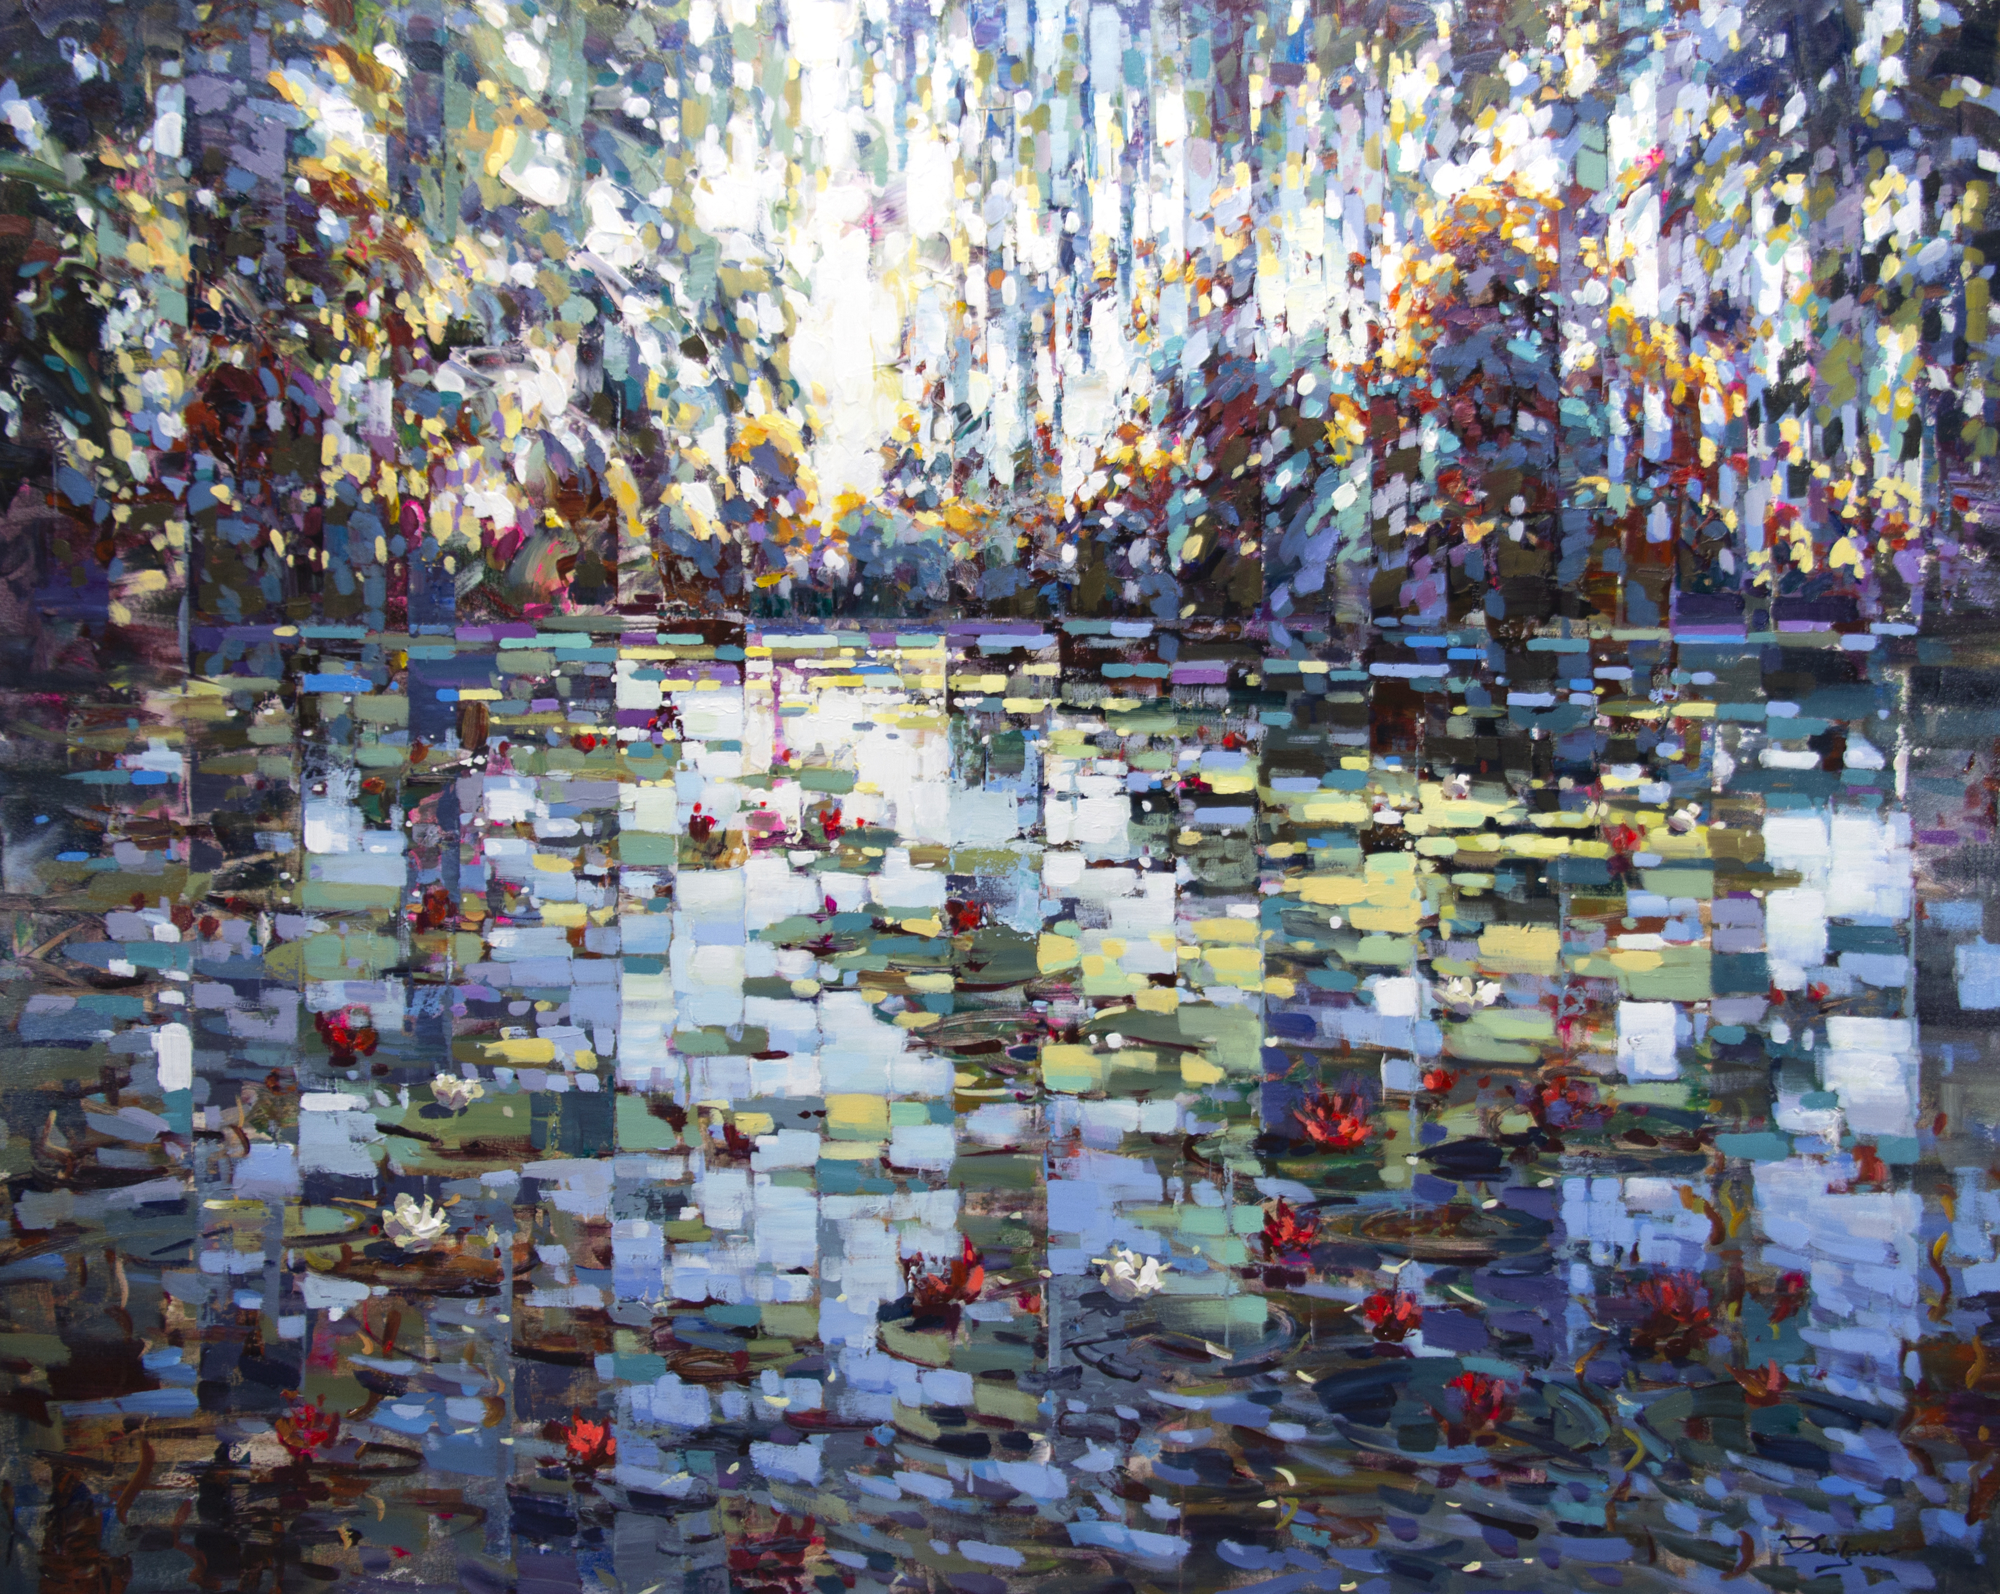 Pond with Lilies by Vadim Dolgov